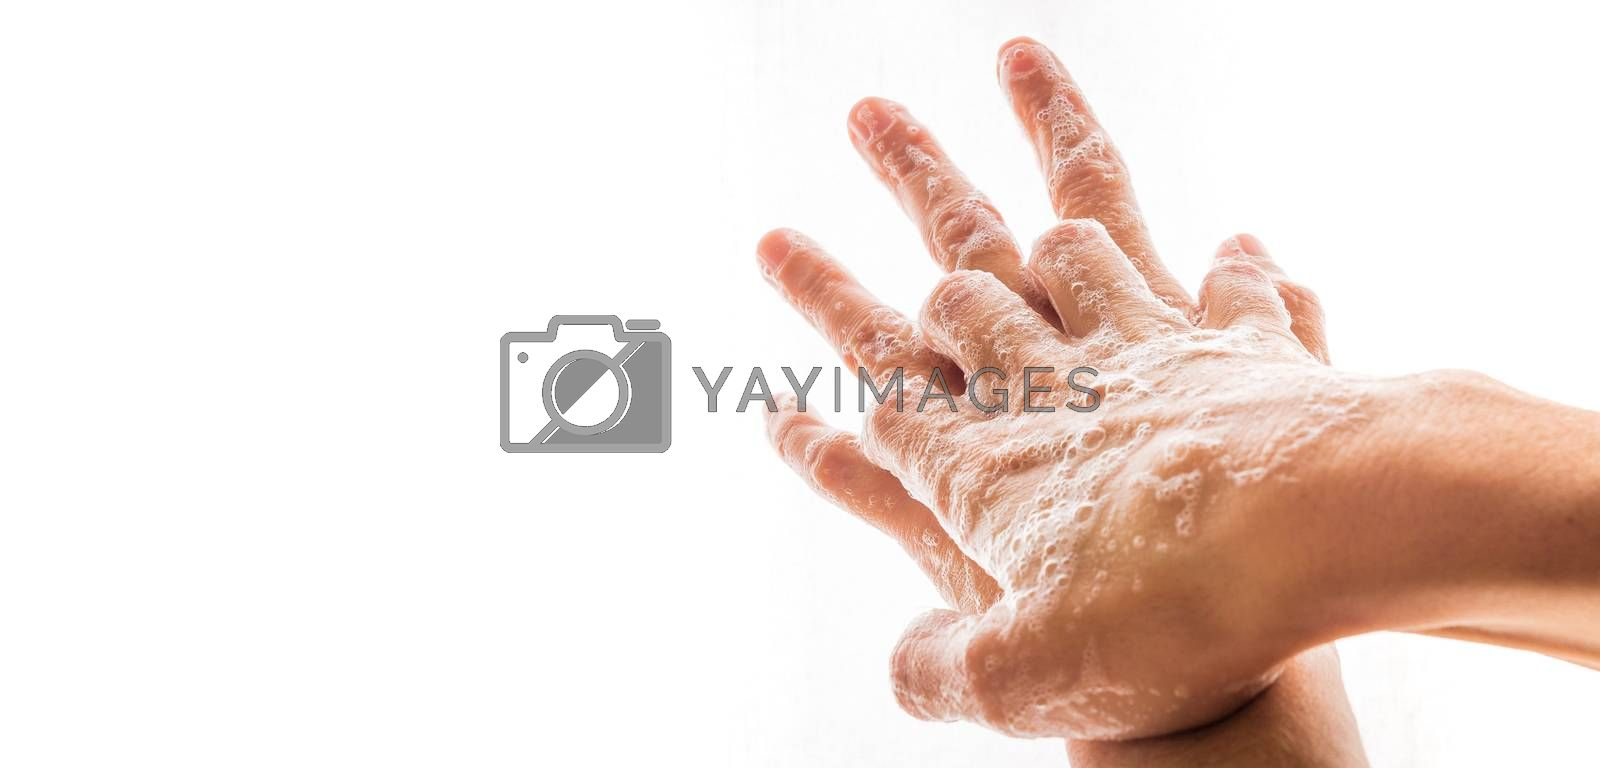 Two human hands washing with soap and bubbles.